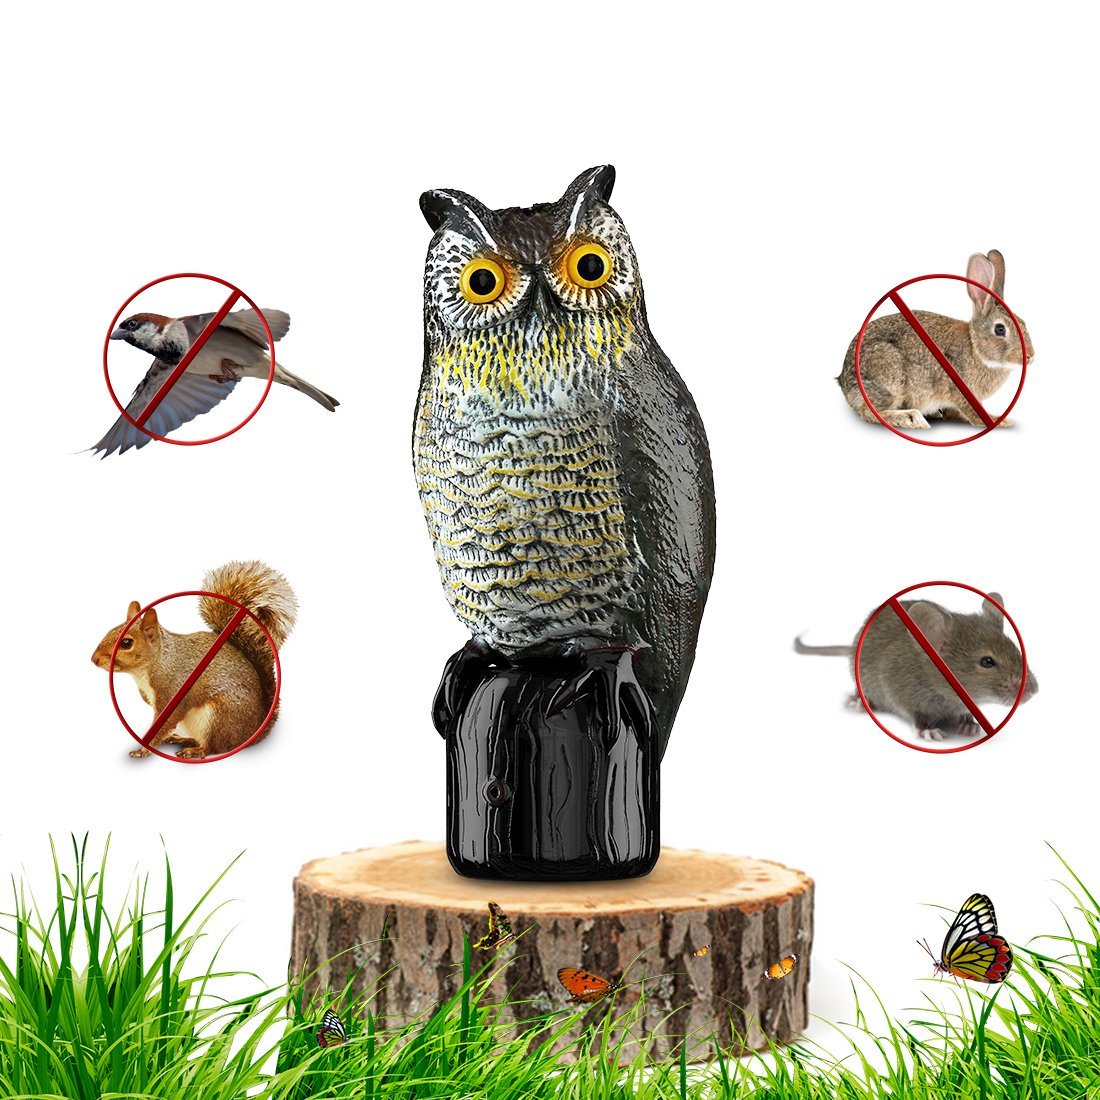 Premium Bird Repellent Fake Owl Decoy for Garden 16 in. tall – Motion Activated & Solar Powered Scarecrow Diverter - Flashing Eyes & Frightening Sound – For Birds, Mice, Squirrels, Rabbits & more